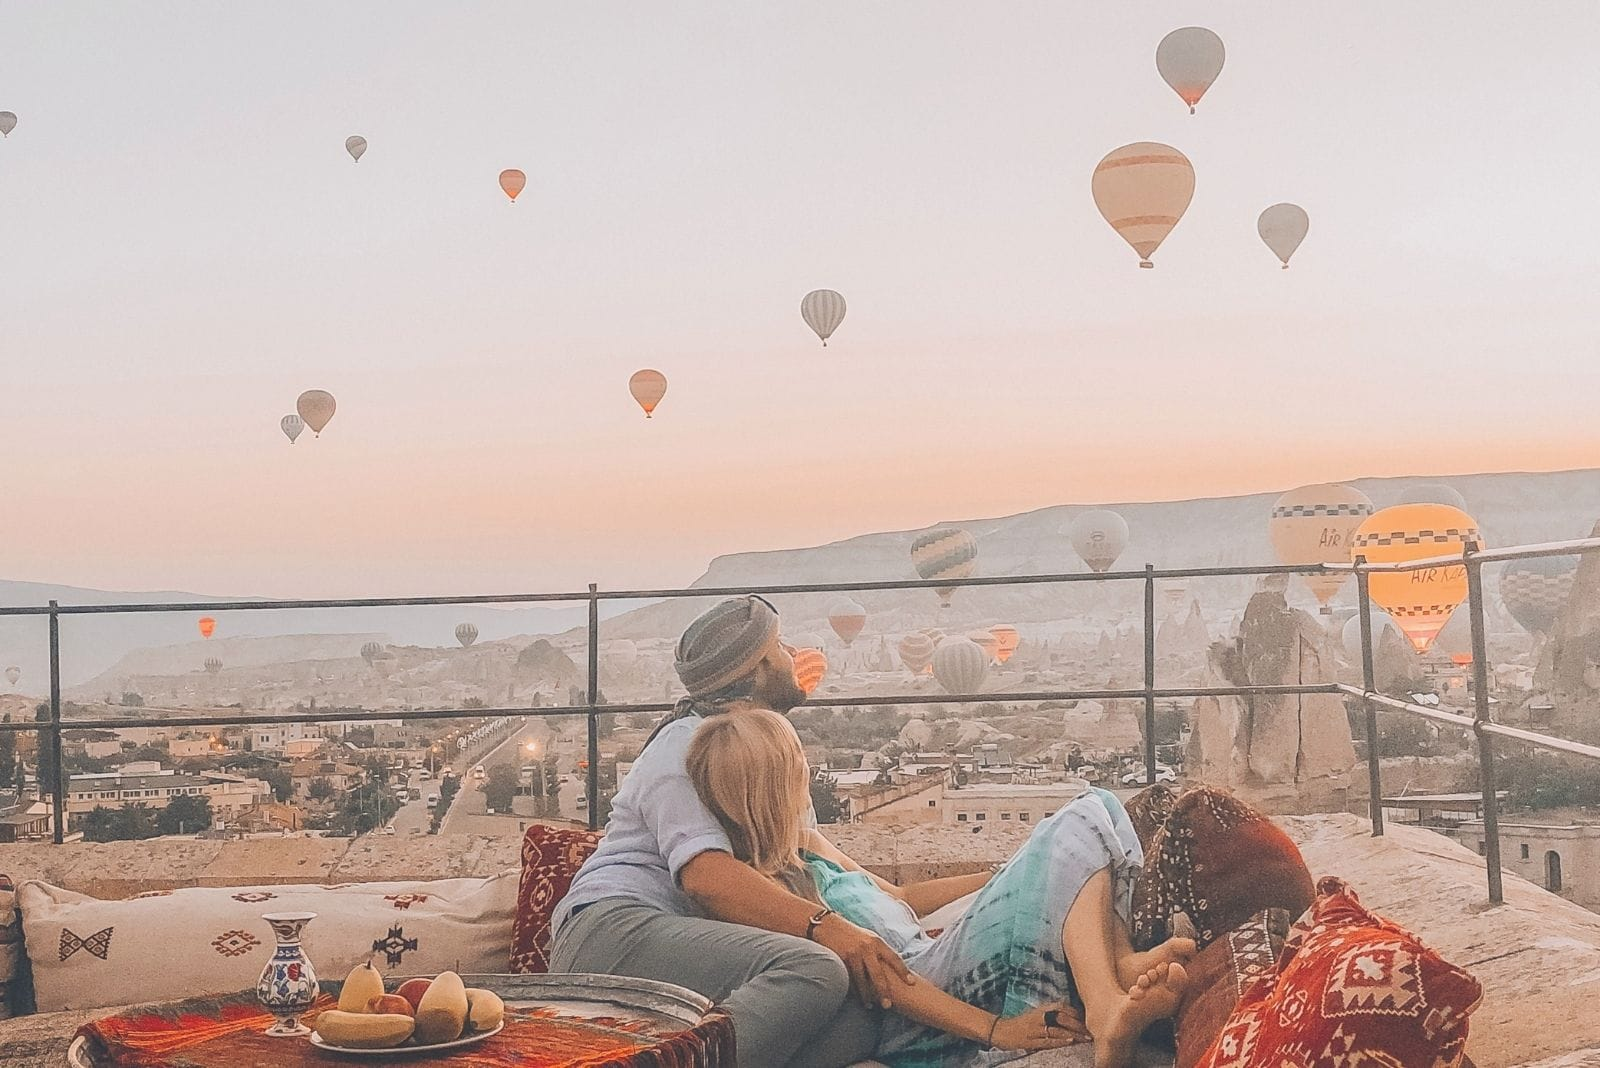 couple lying in sofa at the rooftop watching hot air balloons in the air